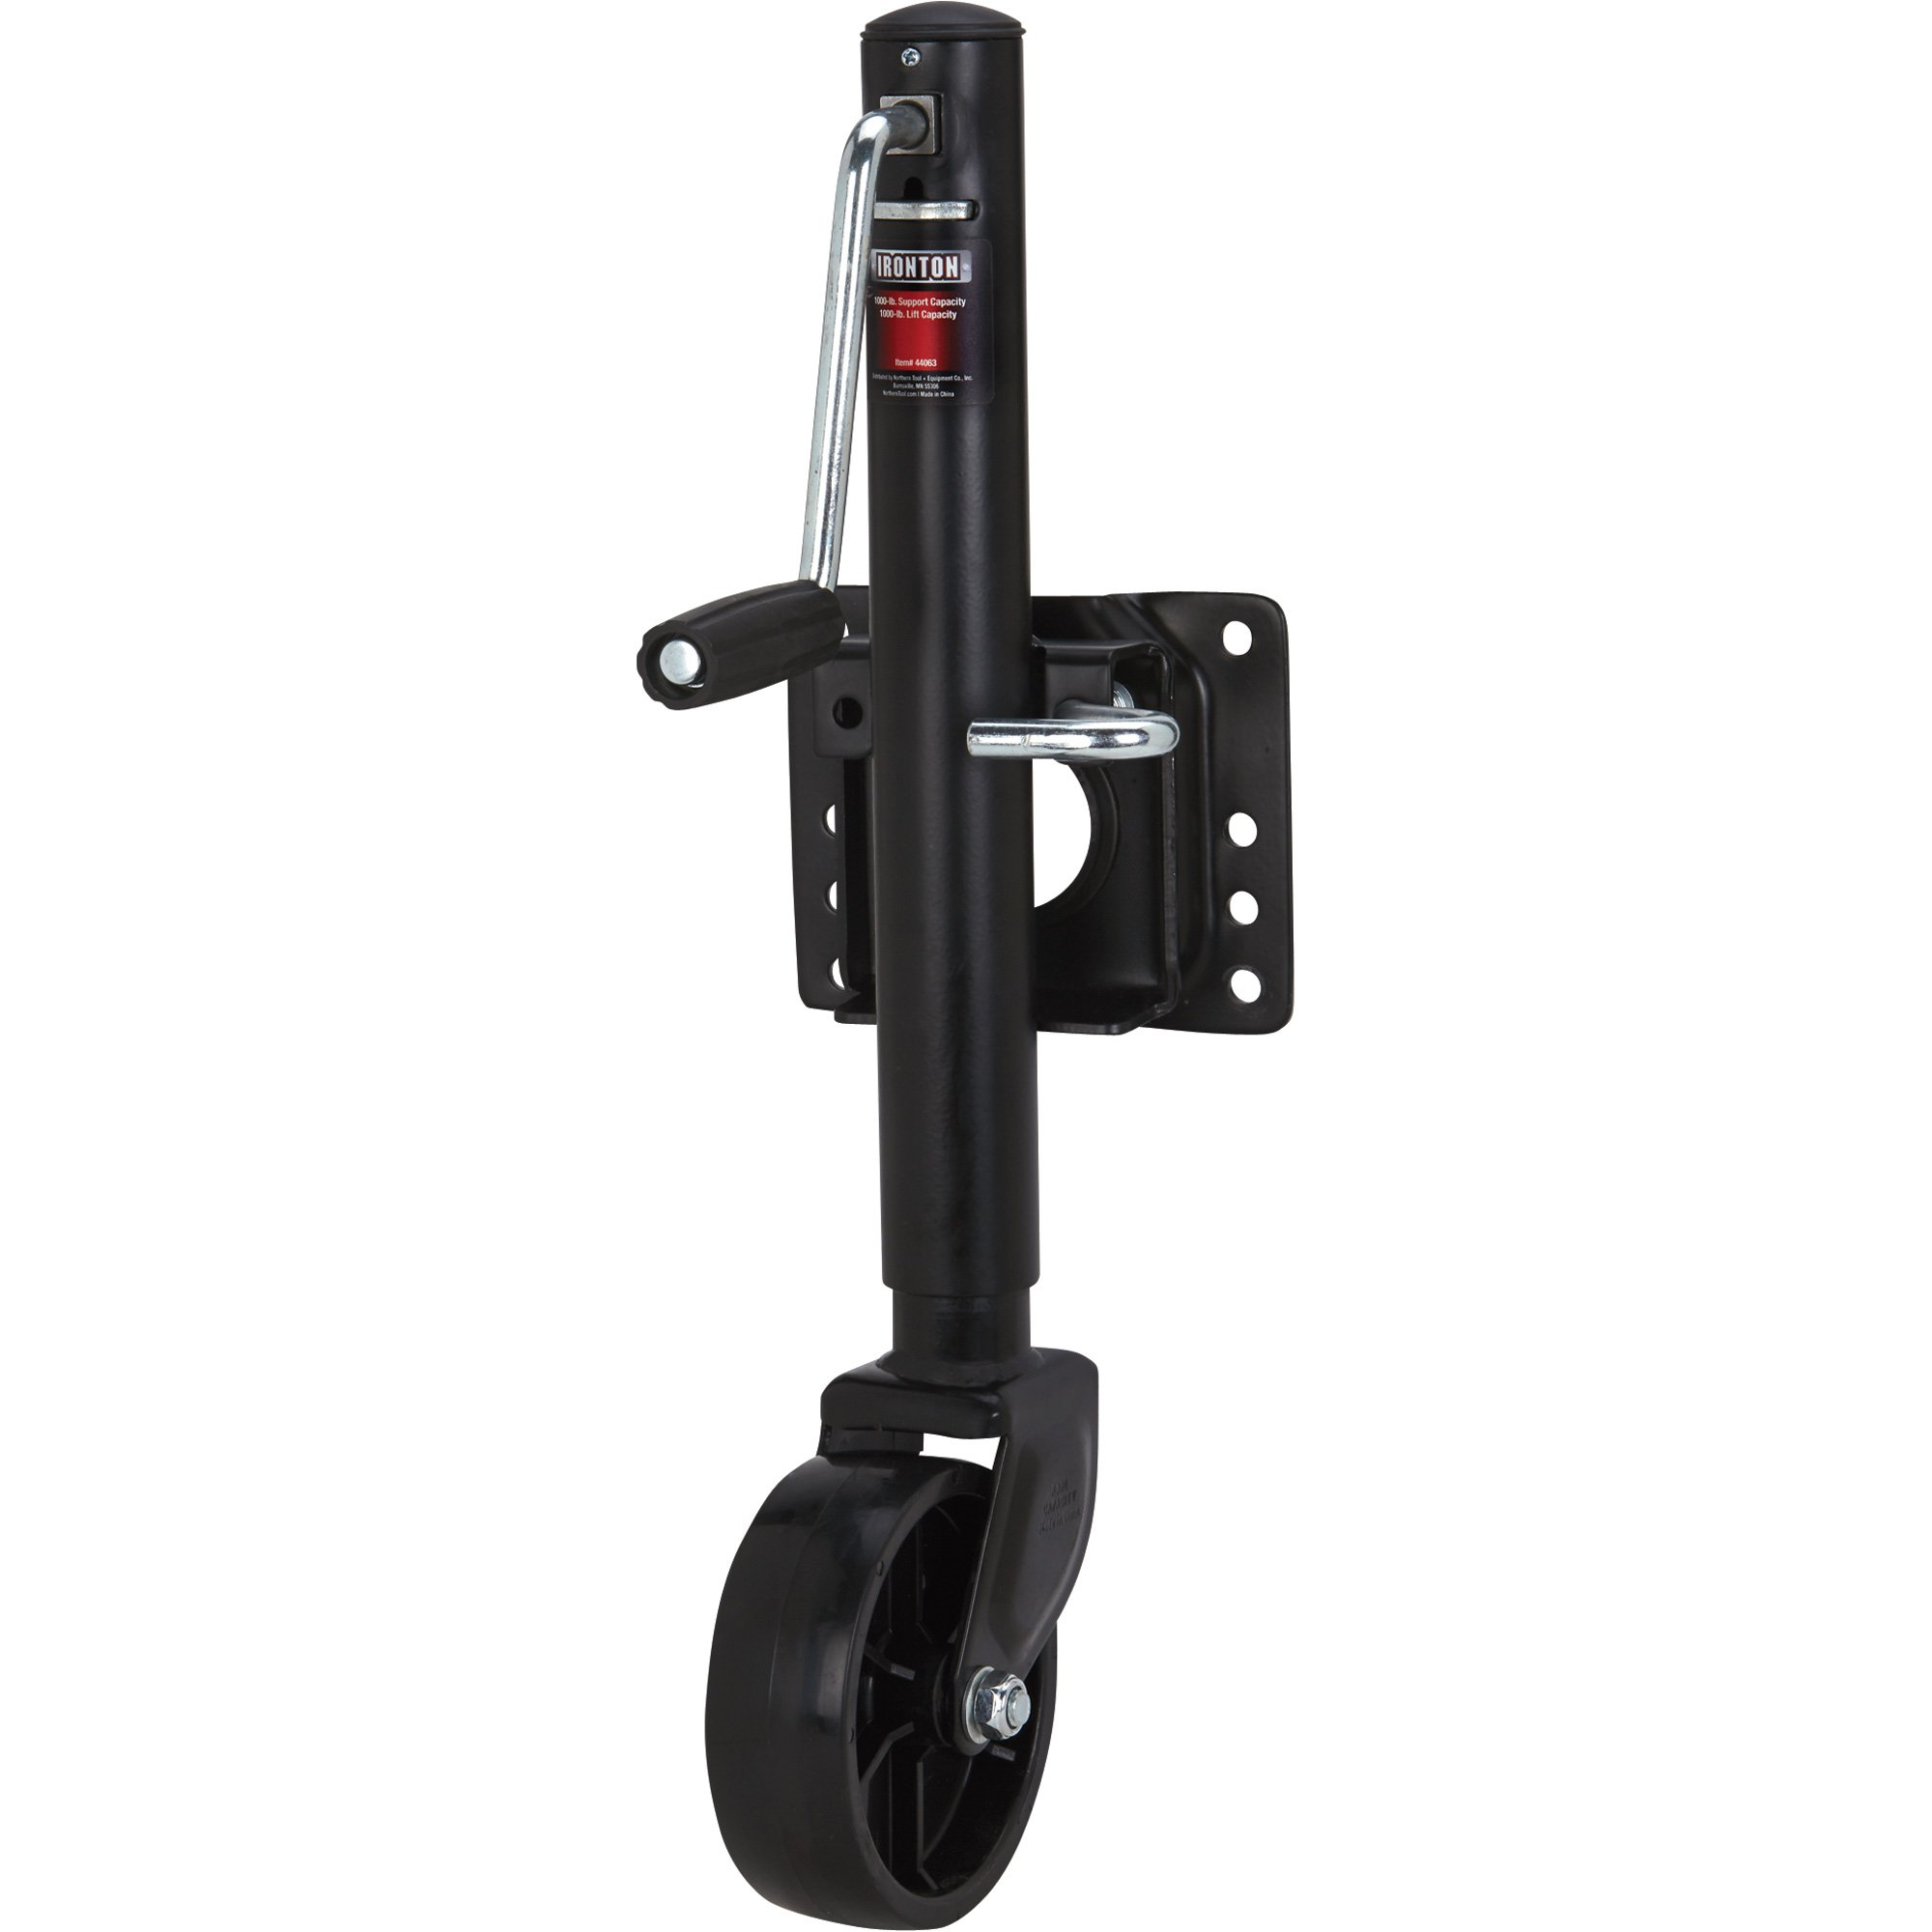 Ironton Bolt-On Side-Wind Marine Swivel Jack - 1,000 Lb. Capacity, Black Finish by Ironton (Image #2)